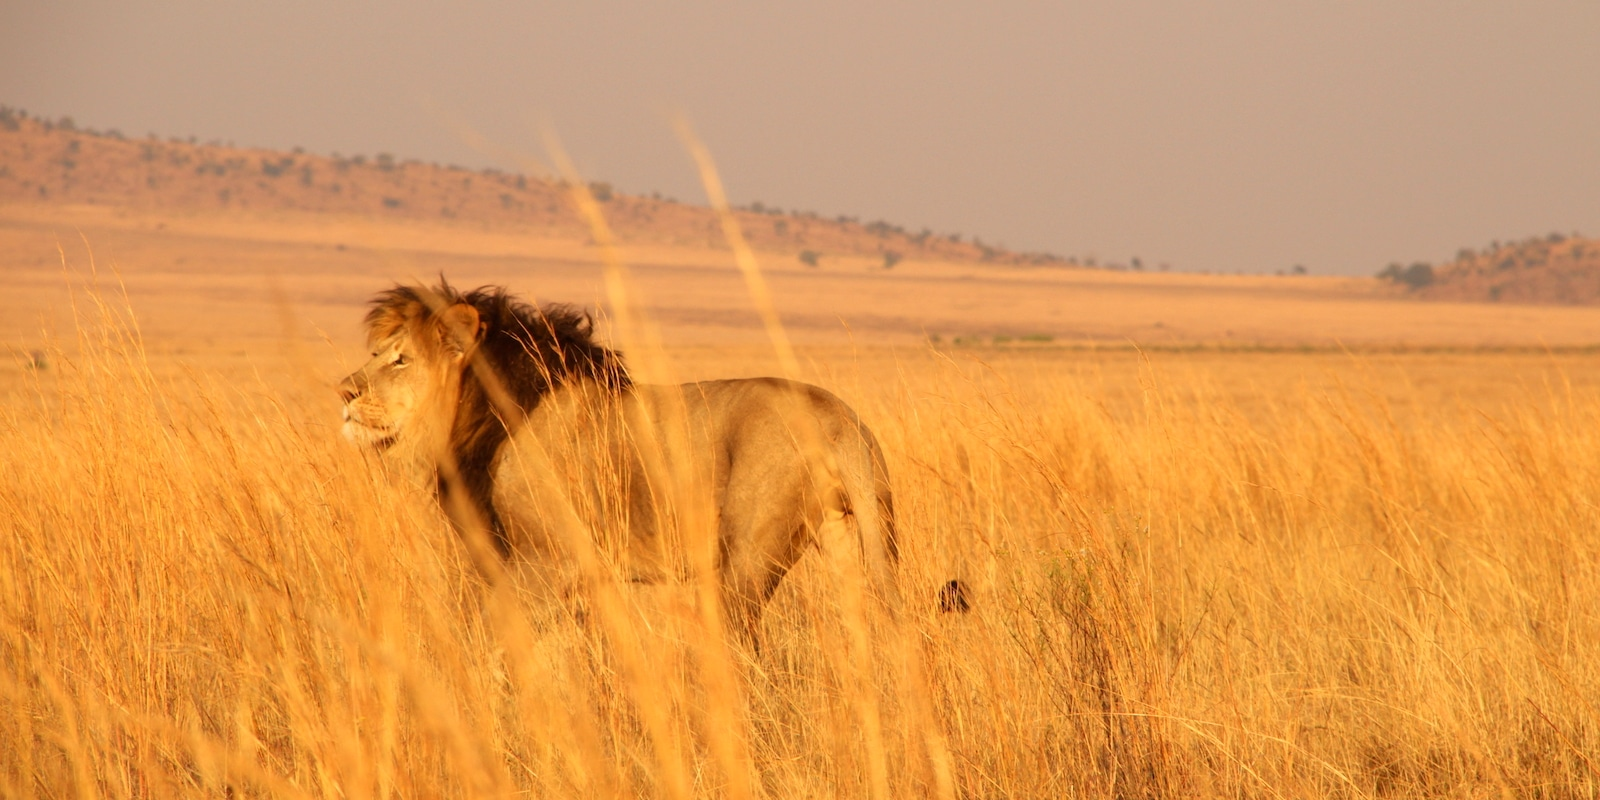 Lion in the African Savannah